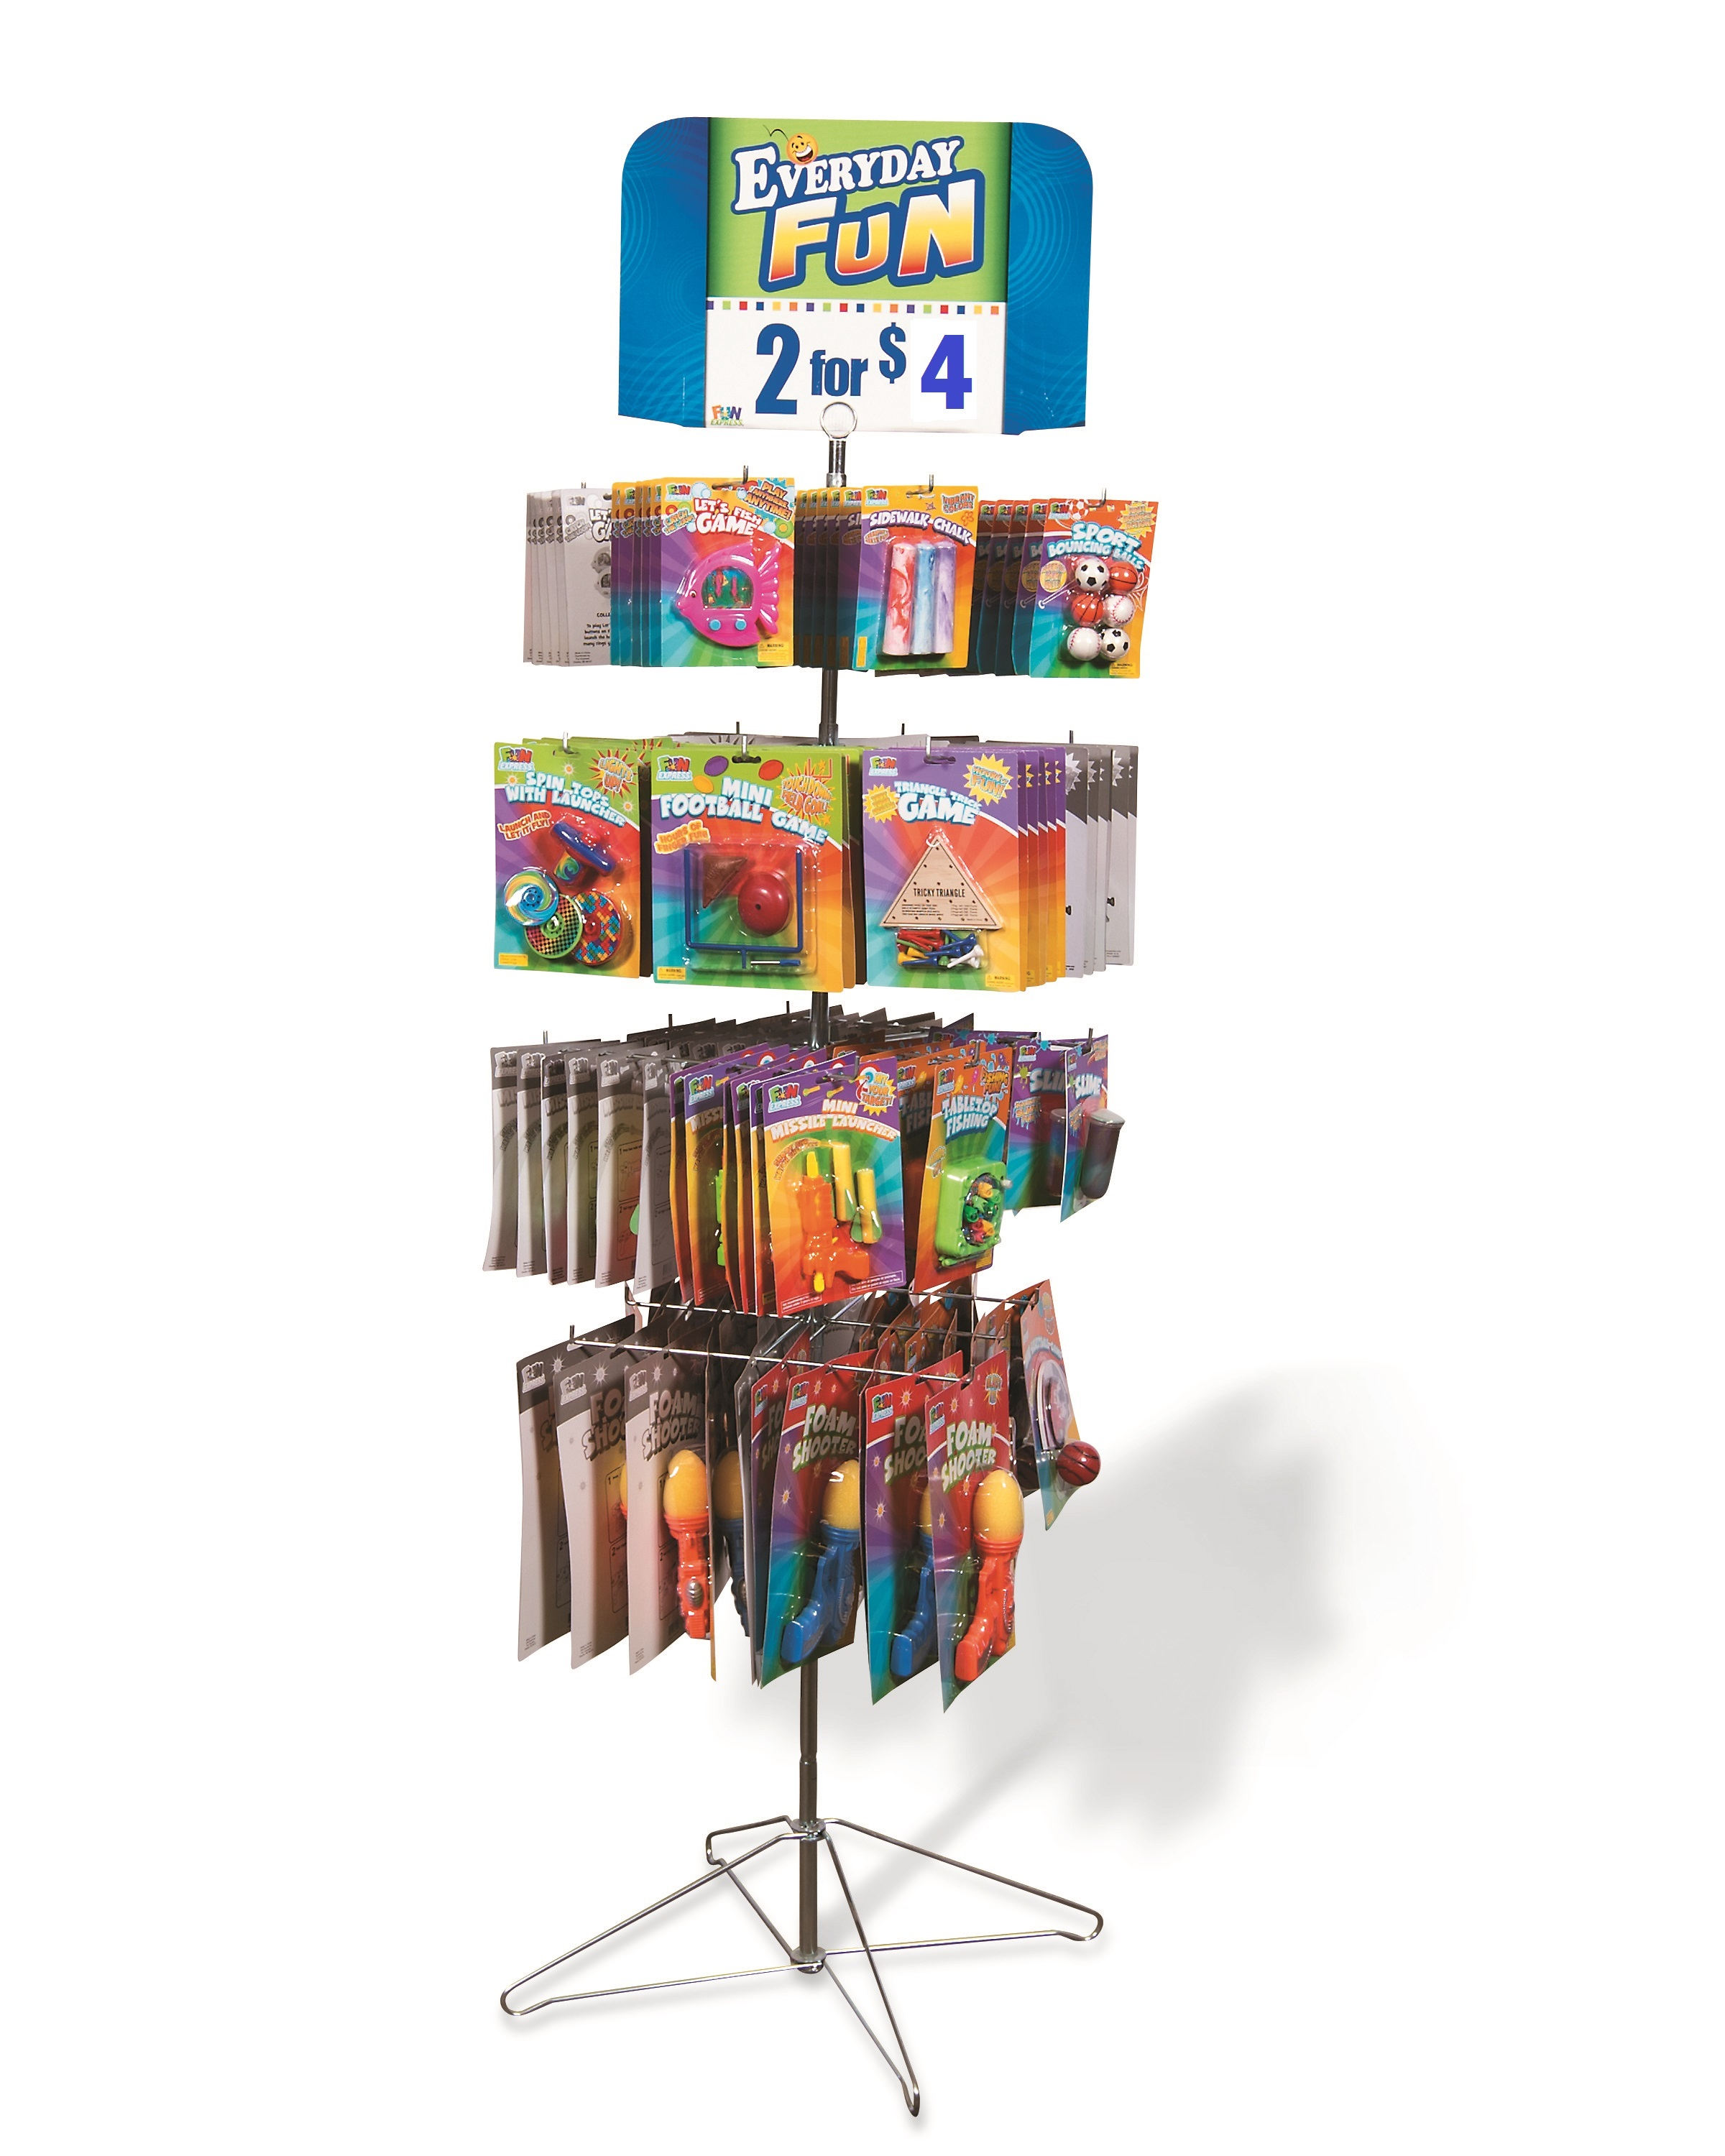 NEW Impulse 144pc Spinner Toy Rack, 60% + Margins by Fun Express LLC